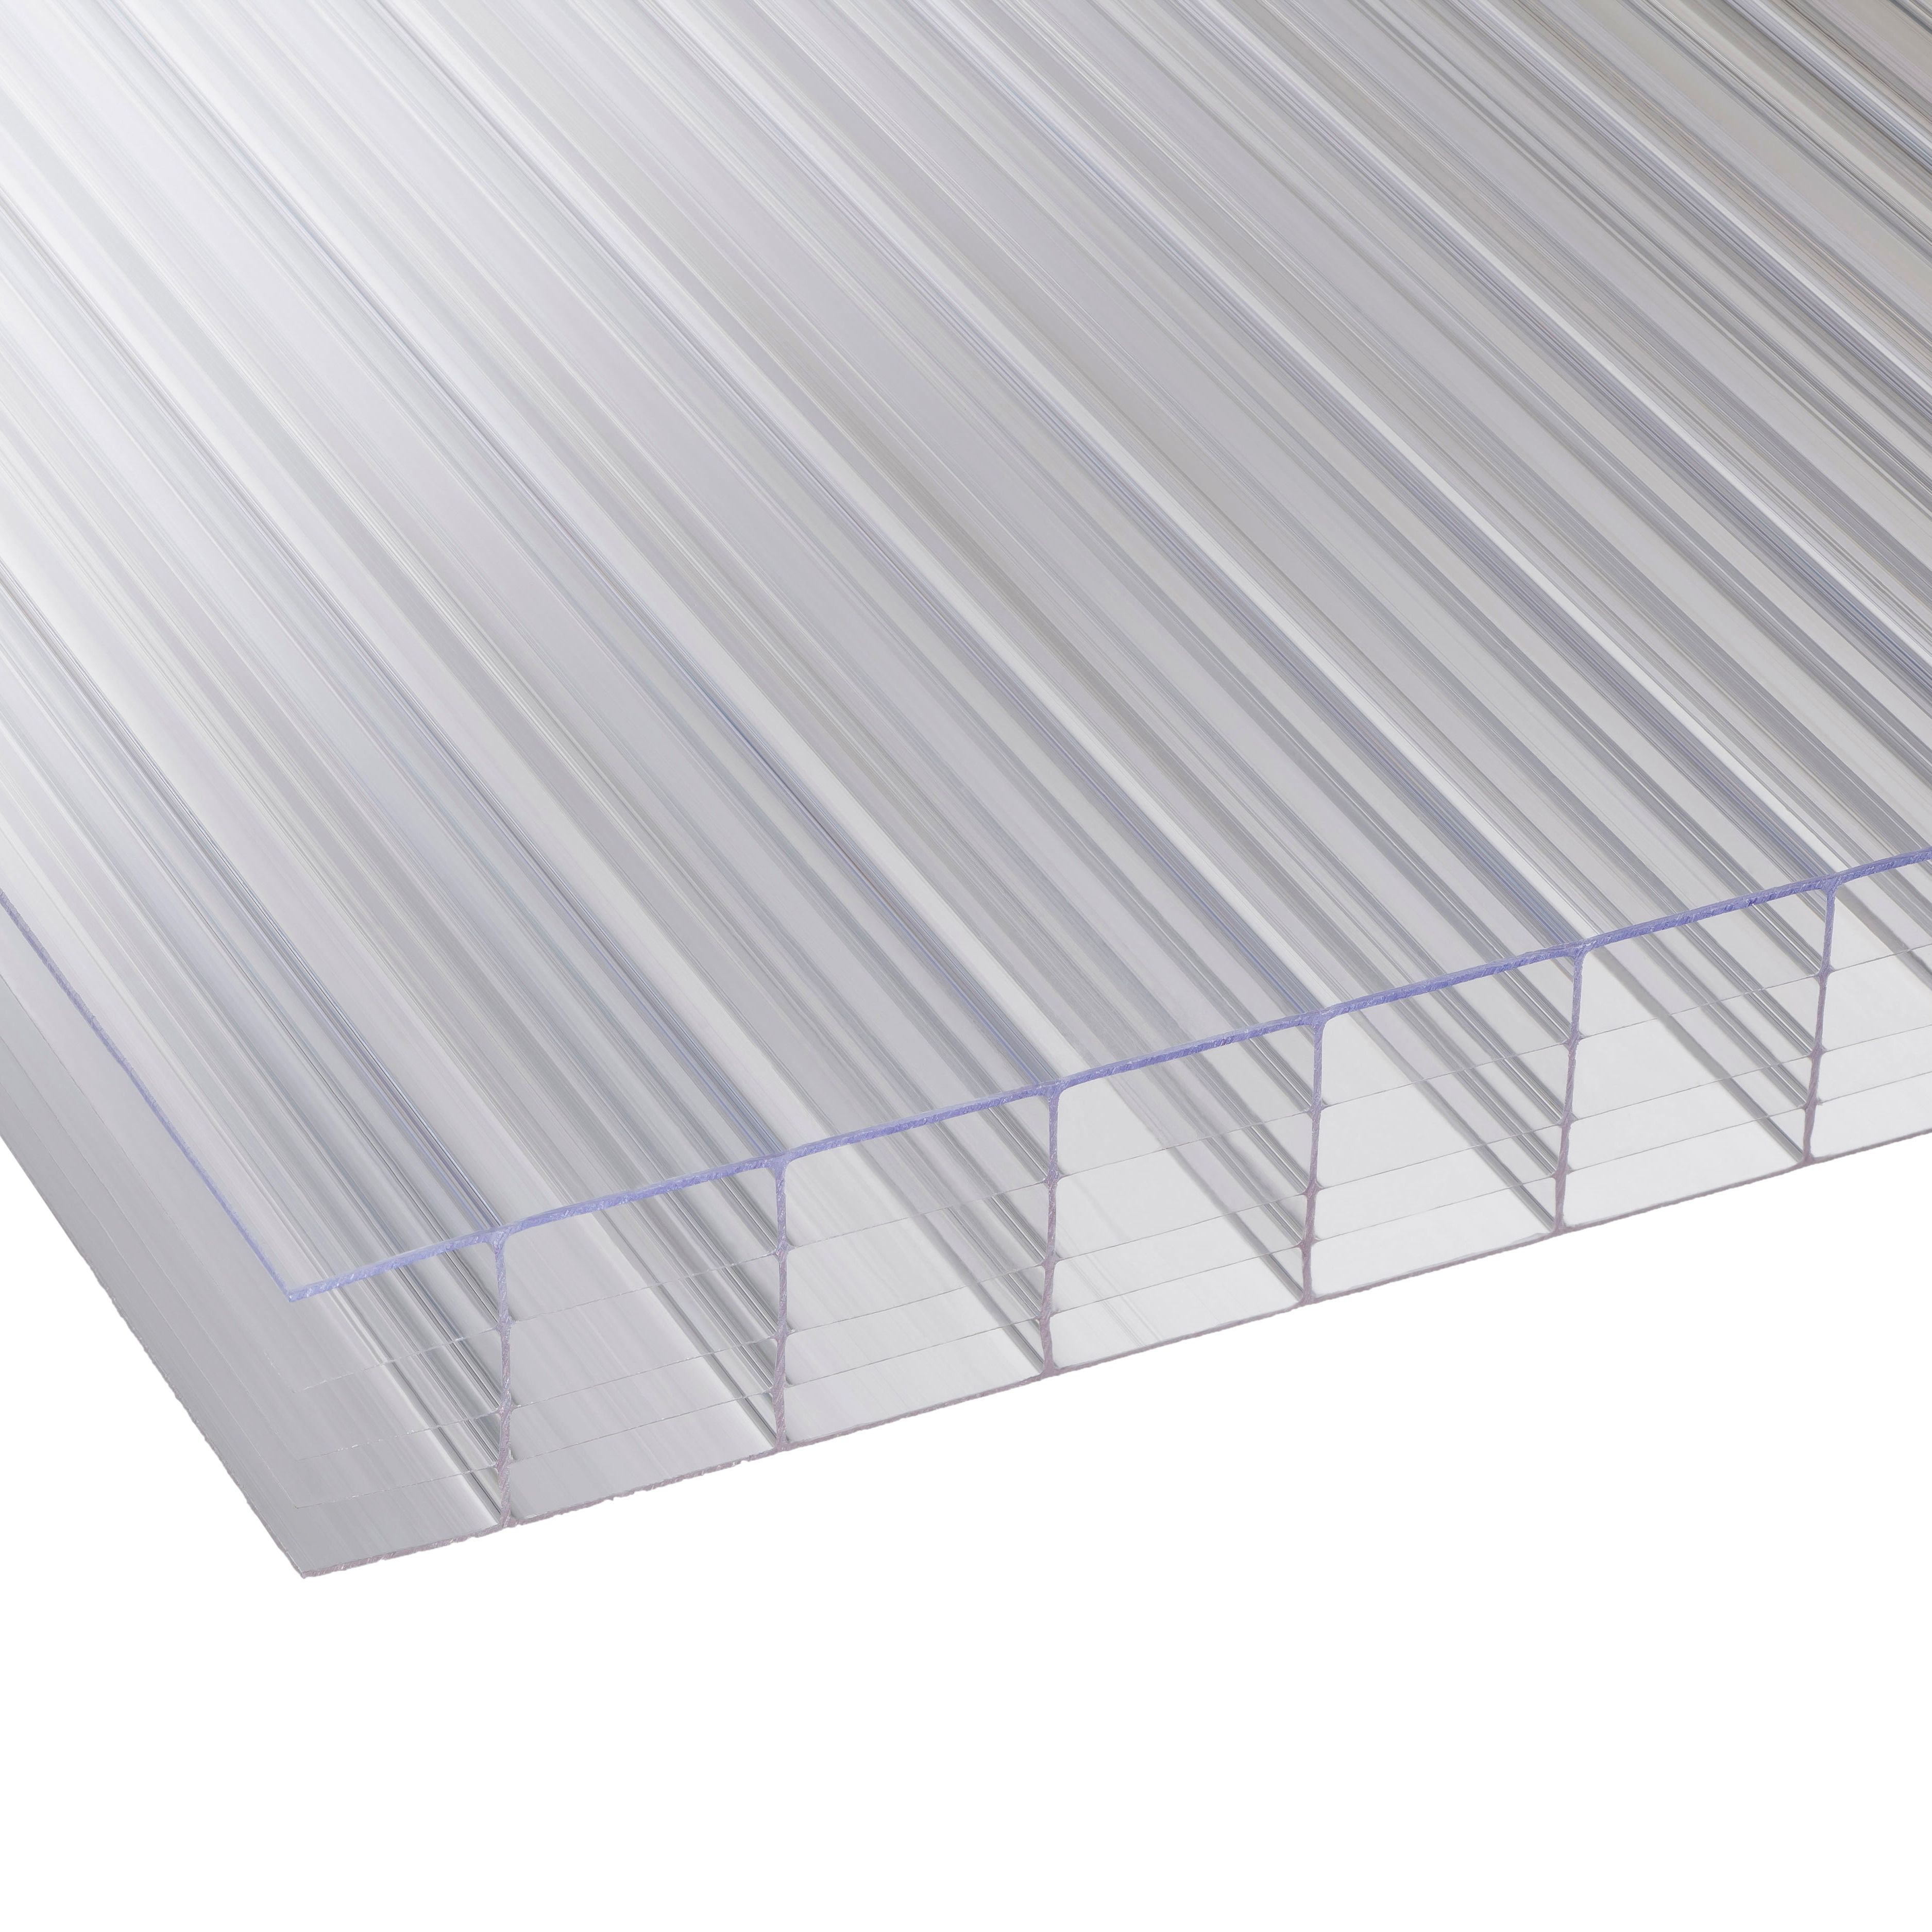 Clear Multiwall Polycarbonate Roofing Sheet 4m X 980mm, Pack Of 5